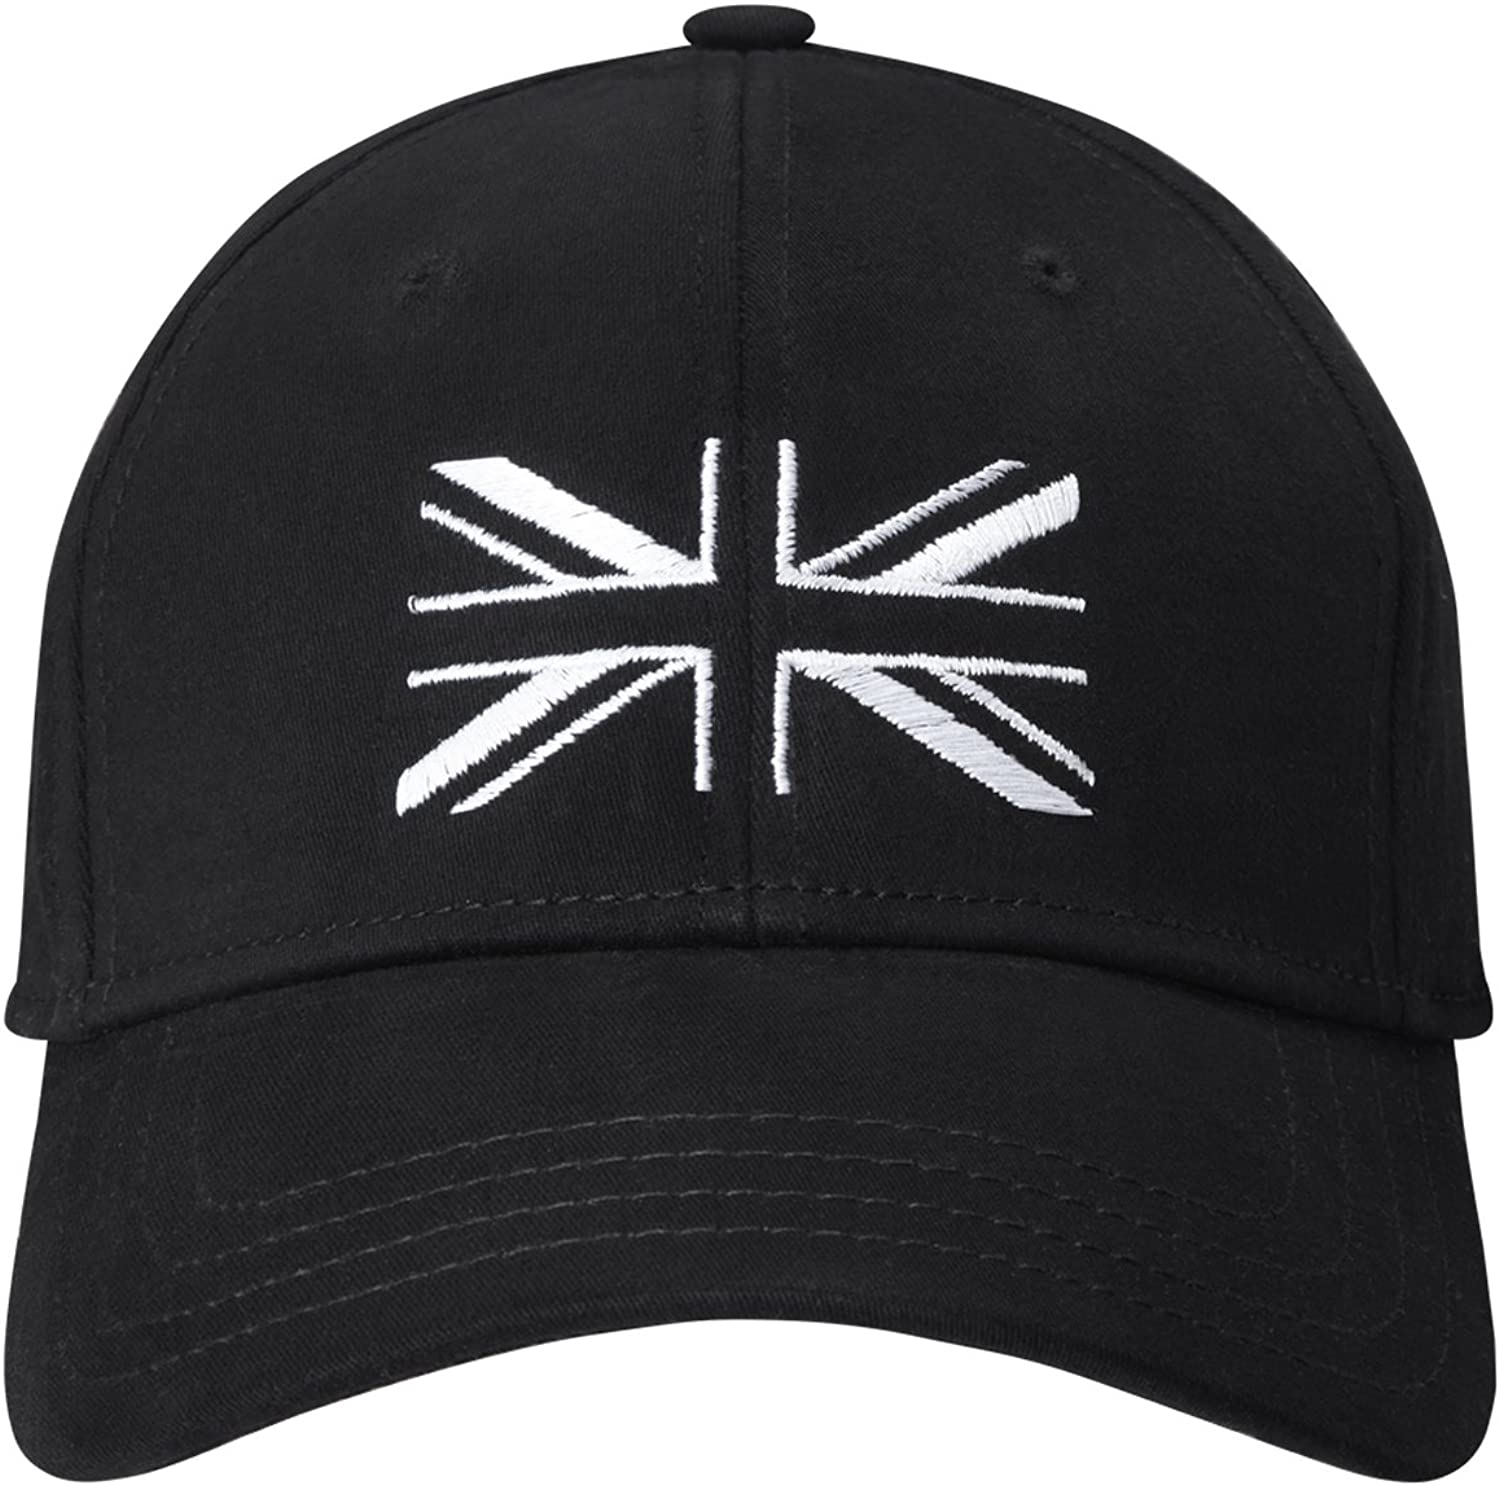 Gents BRIT Cap in Black